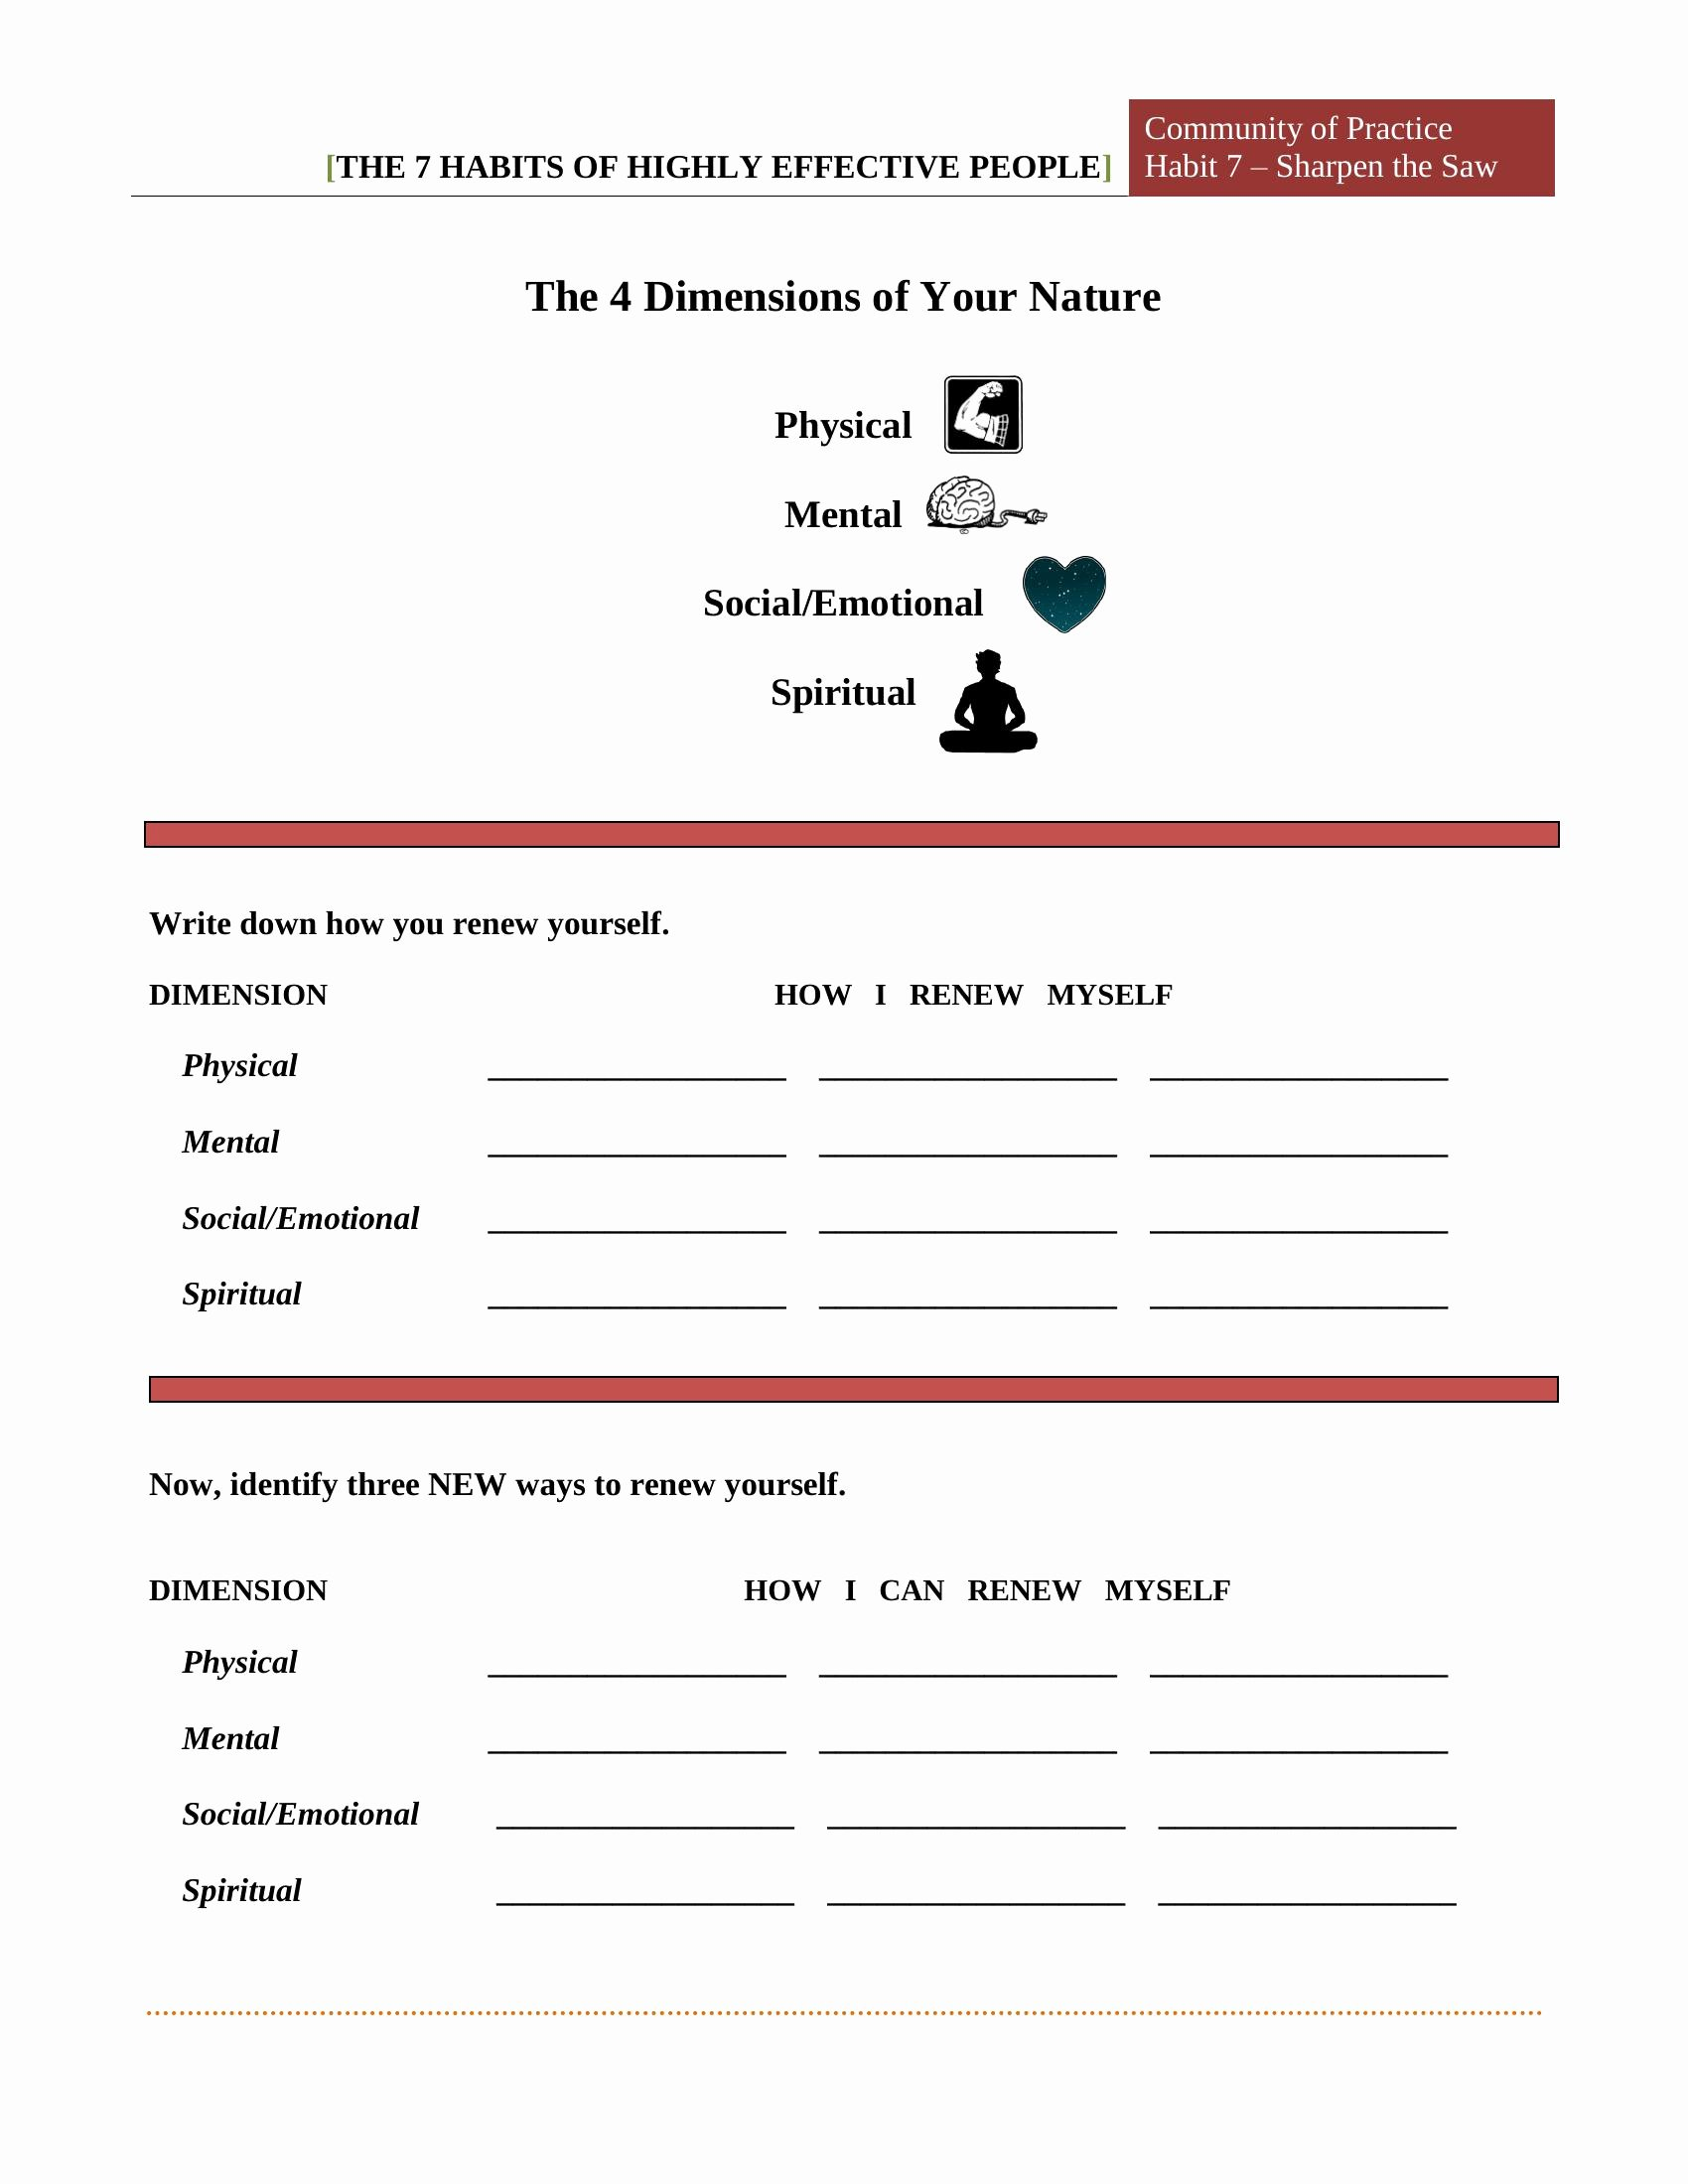 7 Habits Worksheet Pdf Beautiful 7 Habits Worksheet Pdf Free Download Printable